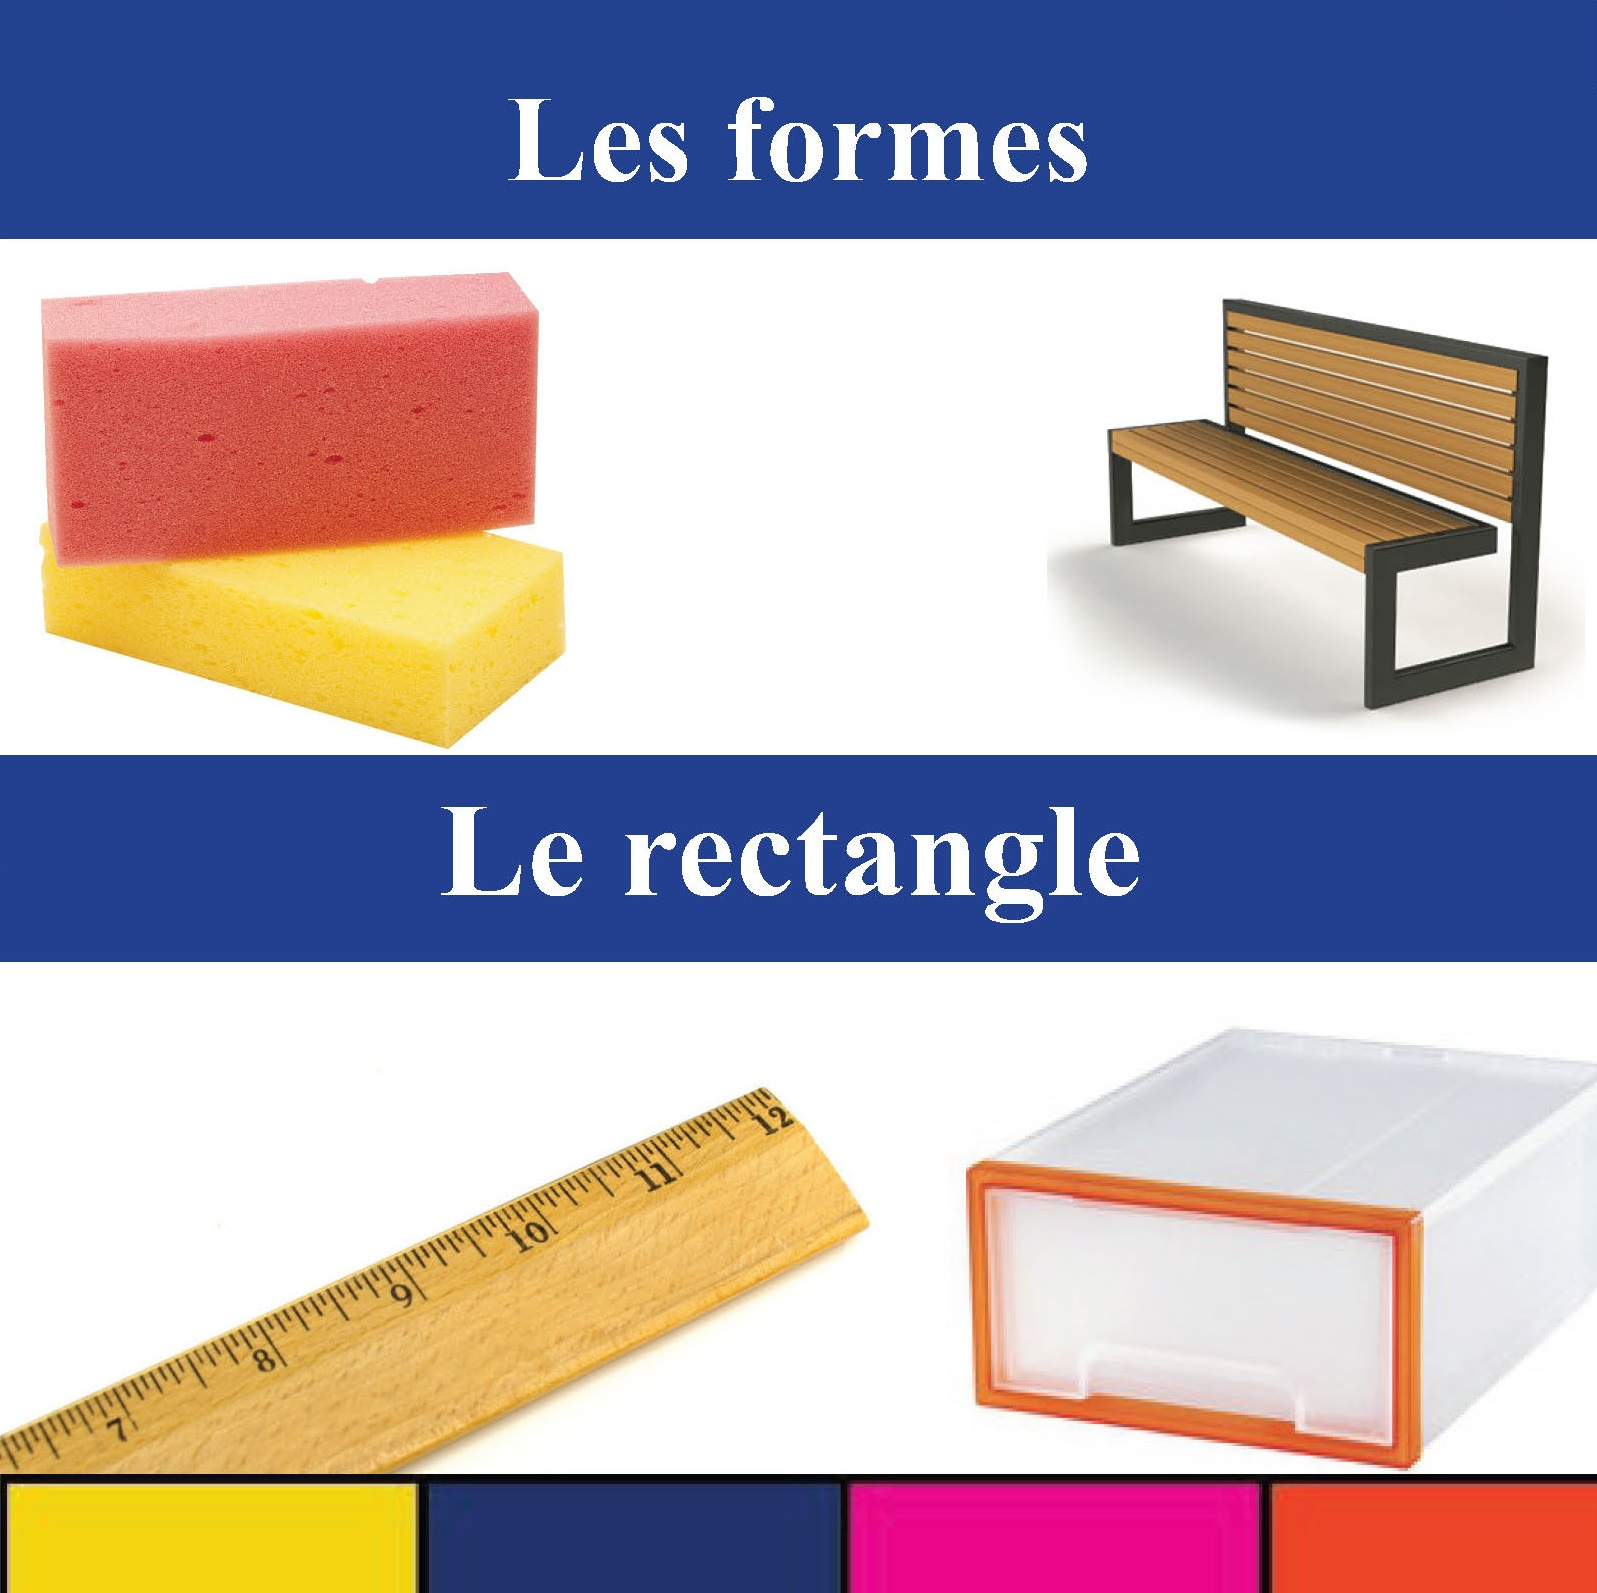 Le rectangle